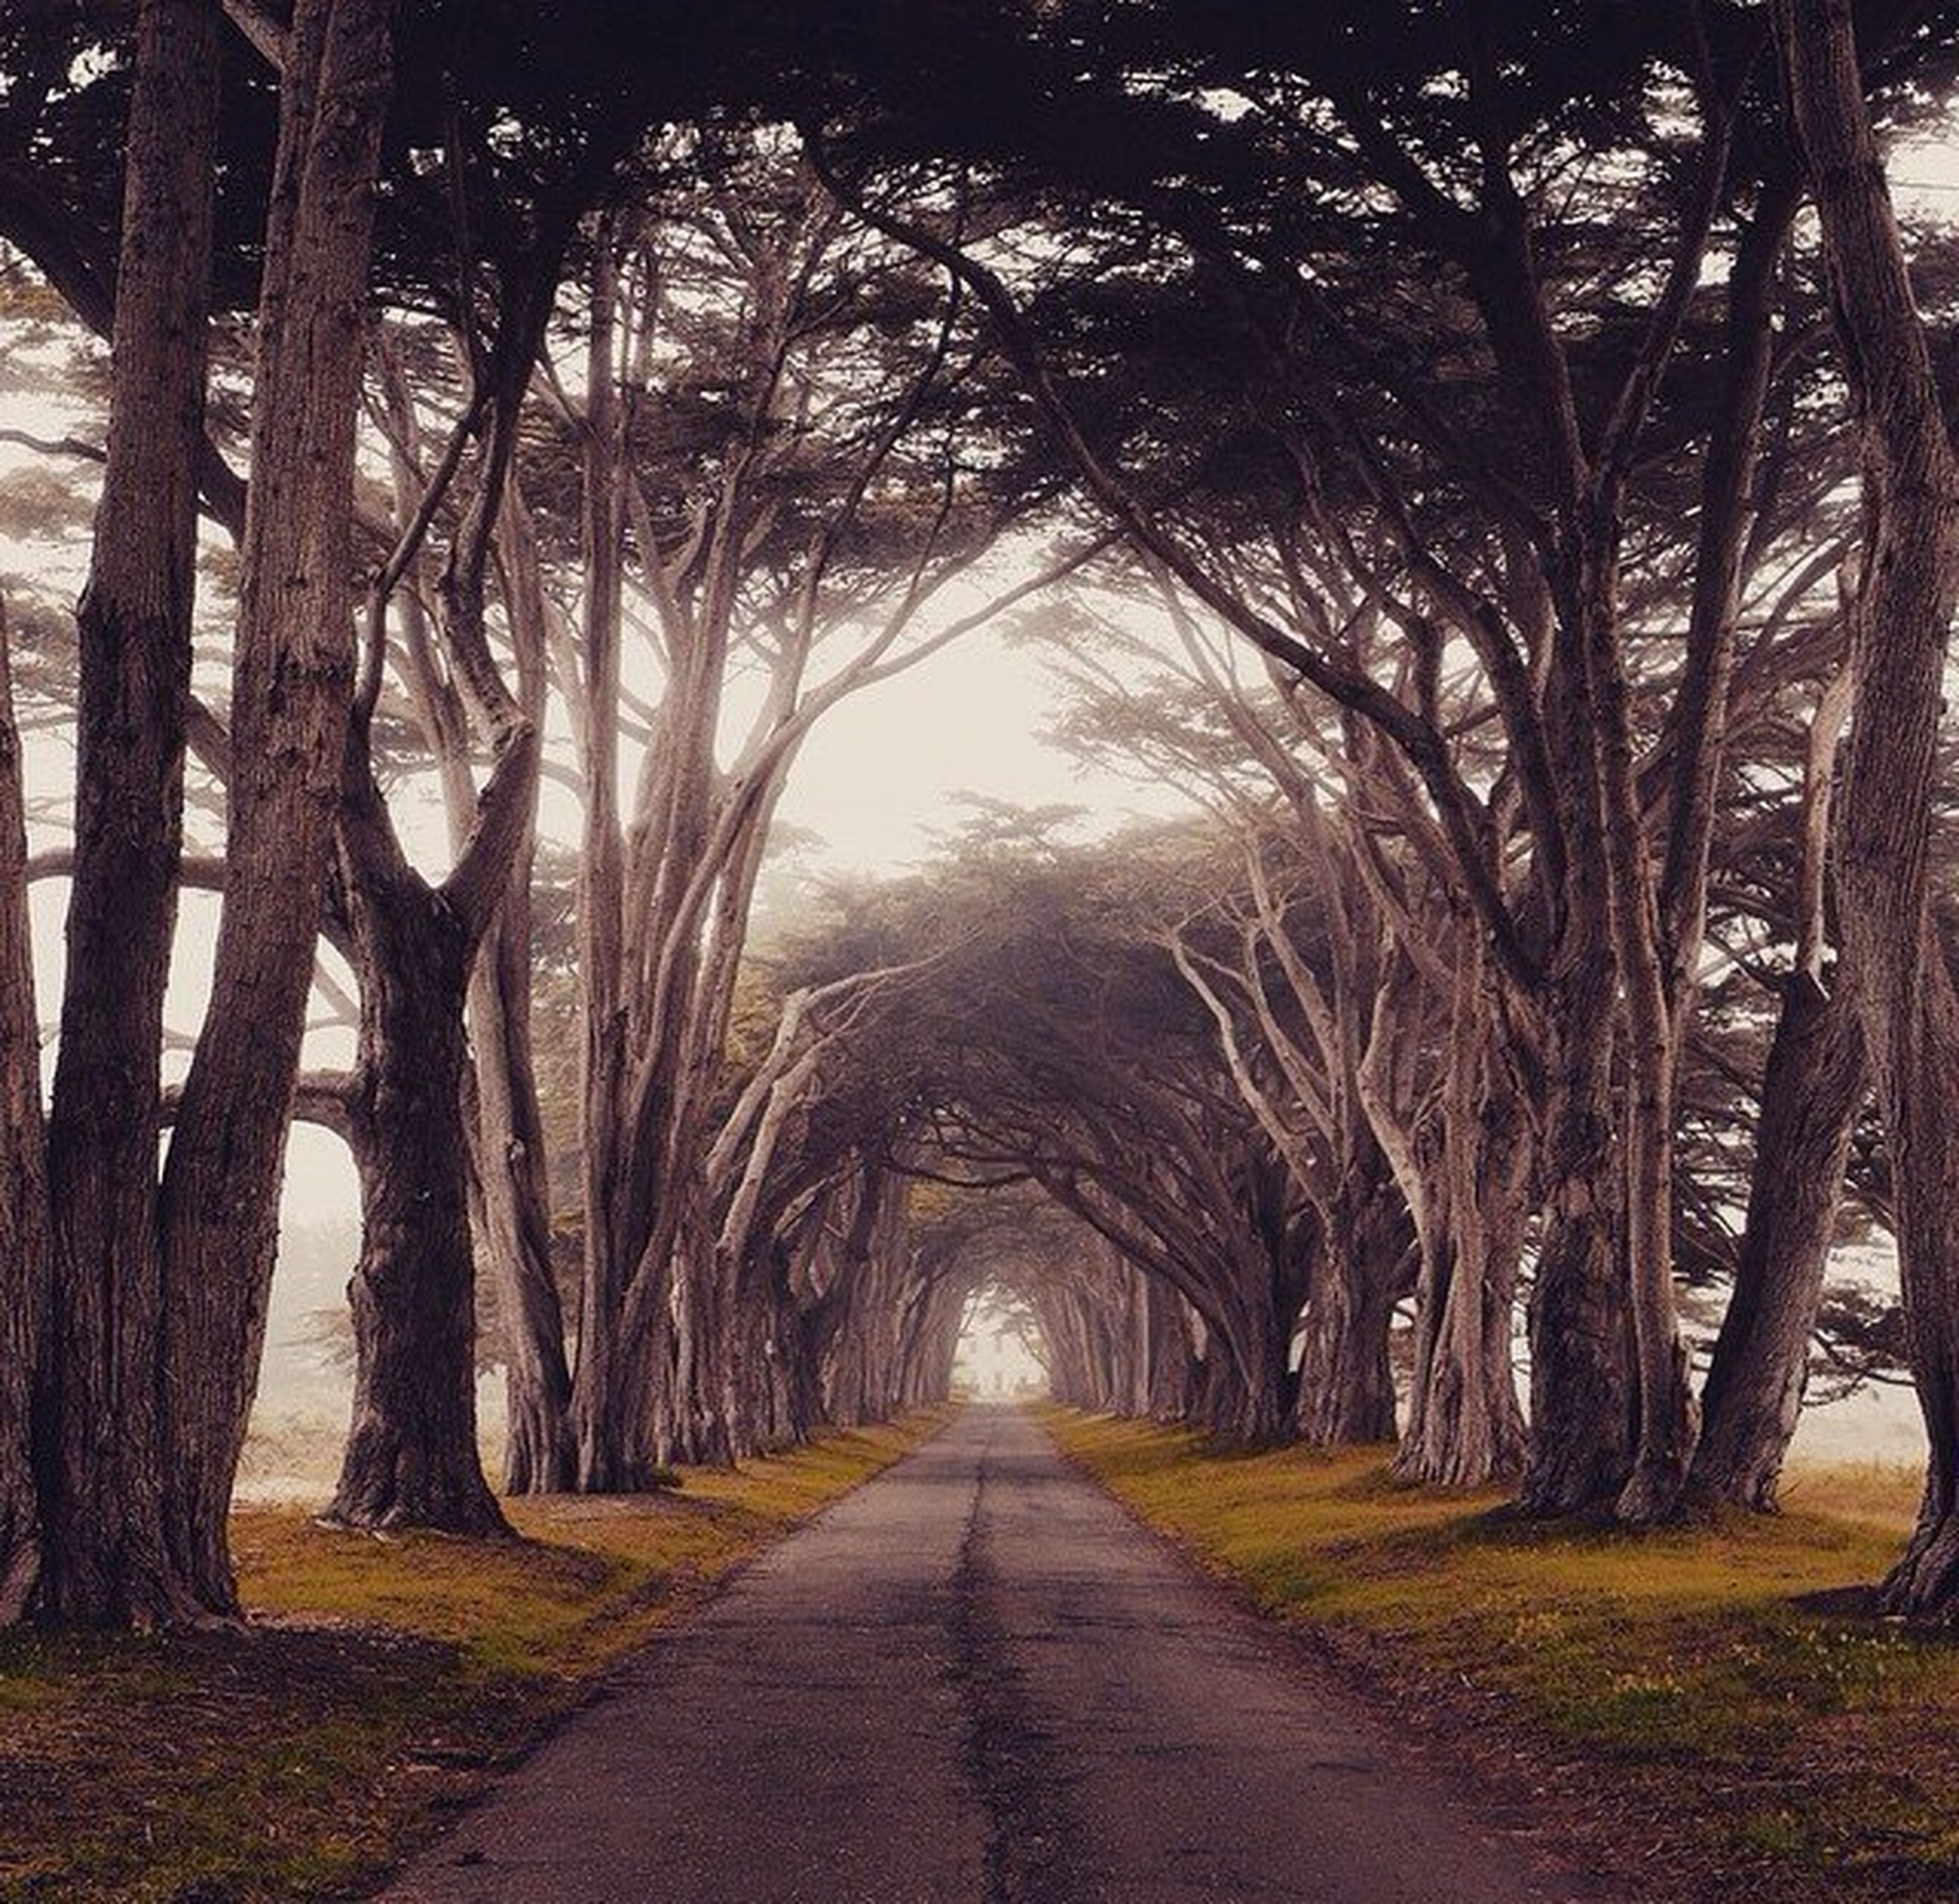 the way forward, tree, diminishing perspective, vanishing point, treelined, road, tranquility, transportation, empty road, bare tree, tranquil scene, nature, tree trunk, empty, long, branch, growth, dirt road, country road, scenics